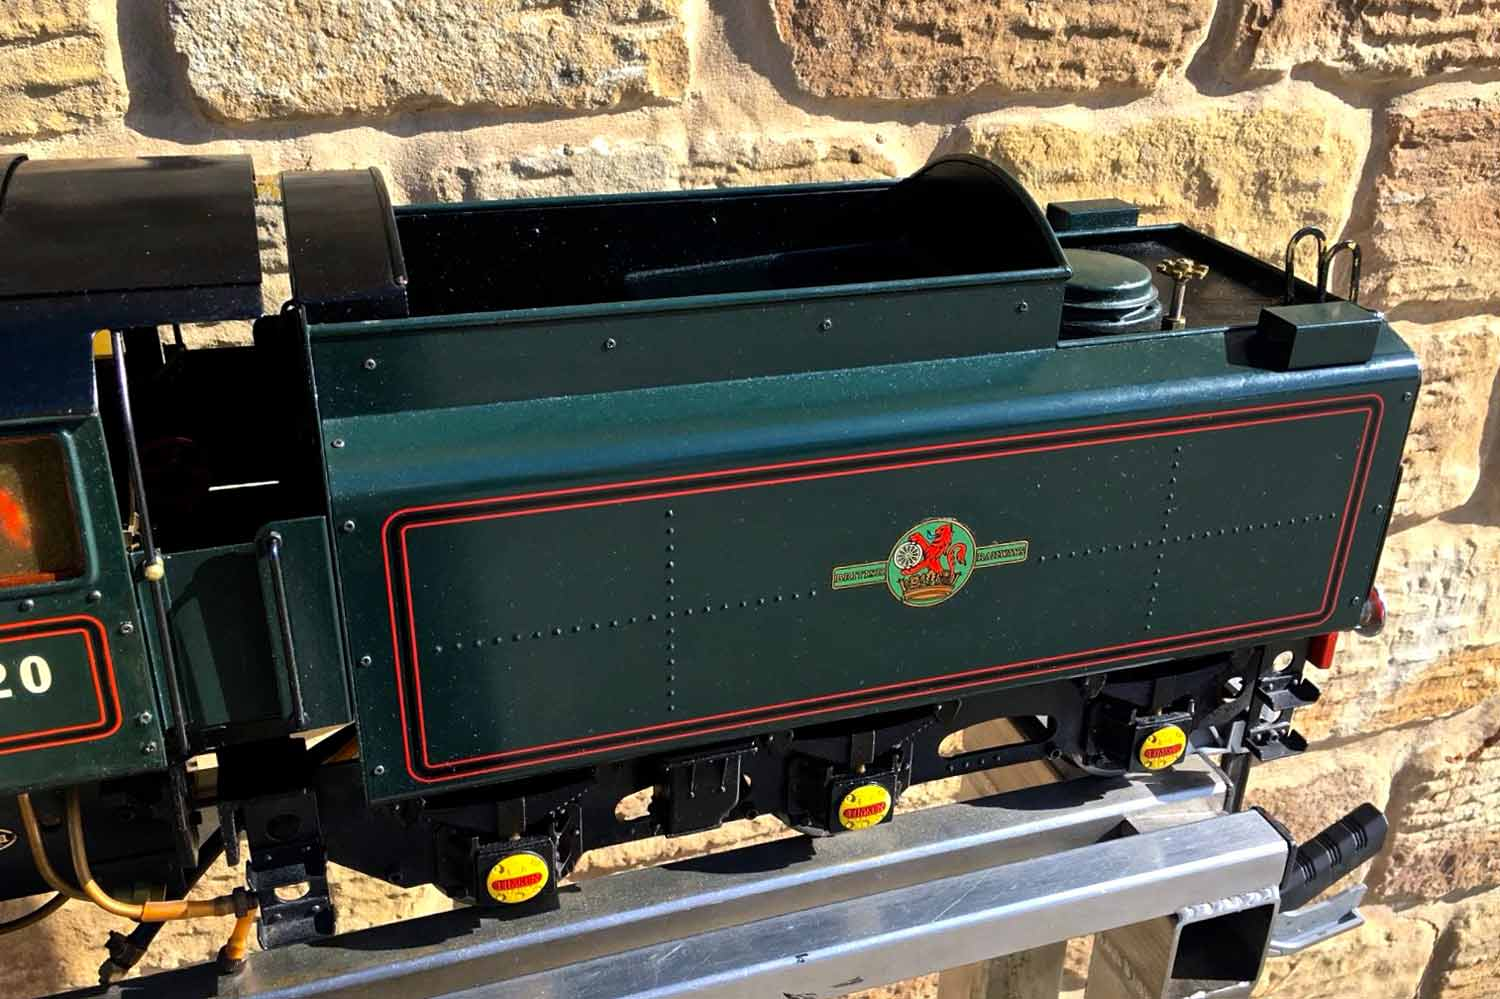 test 3-and-a-half-inch-BR-9F-OS-live-steam-locomotive-for-sale-08